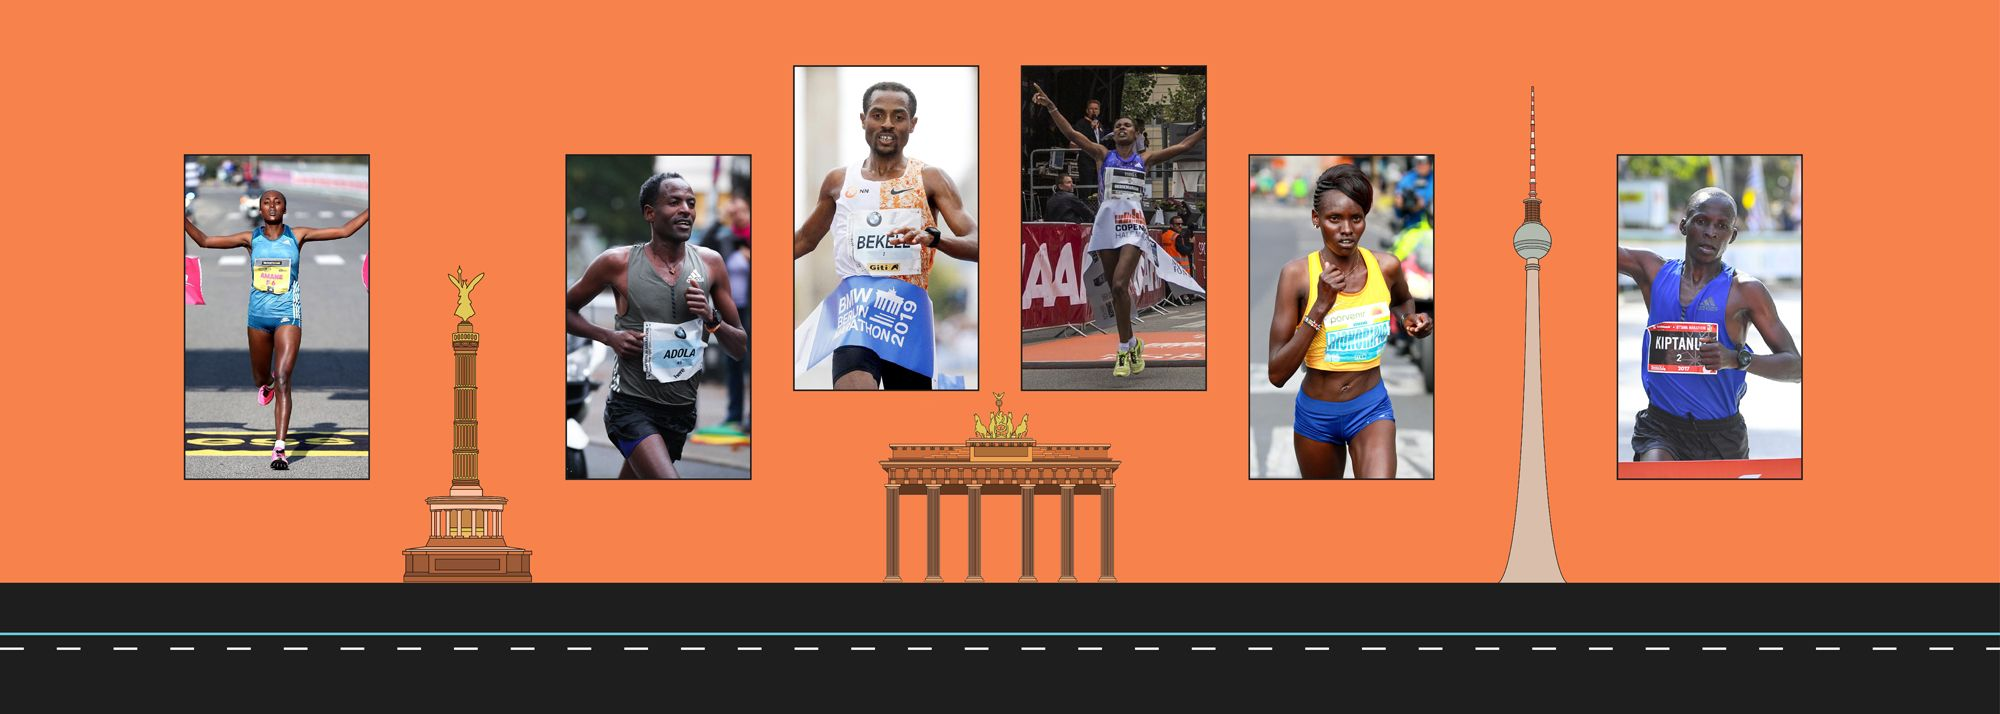 Ethiopian long distance superstar Kenenisa Bekele will defend his BMW Berlin Marathon title on Sunday (26) in what will be his fourth appearance at the World Athletics Elite Platinum Label road race.